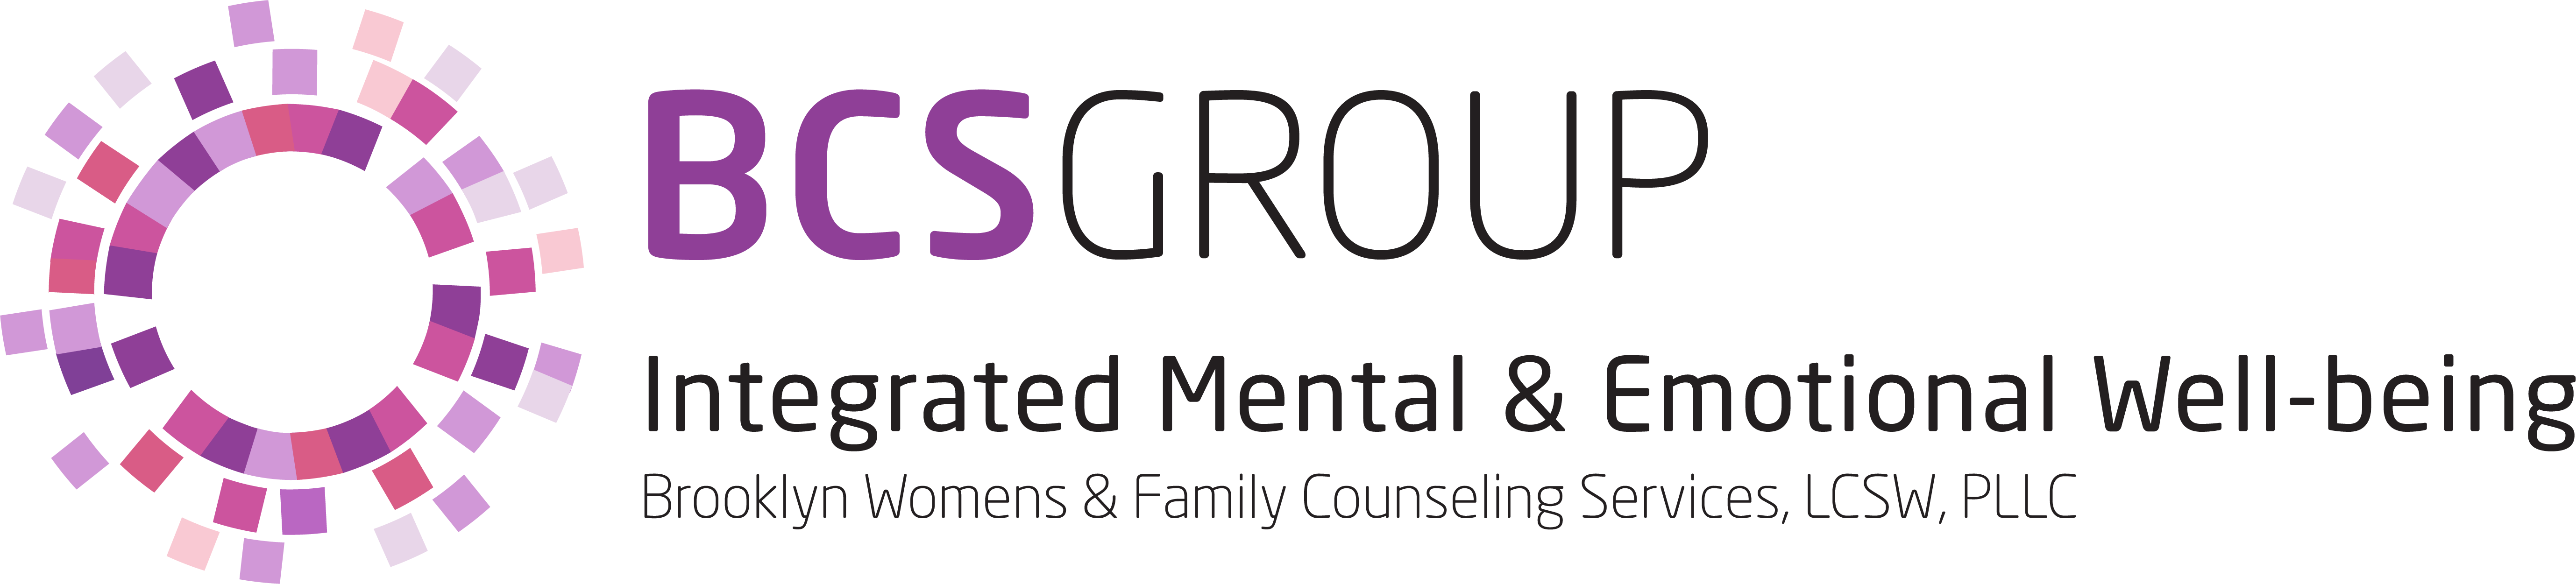 BCS Counseling Group